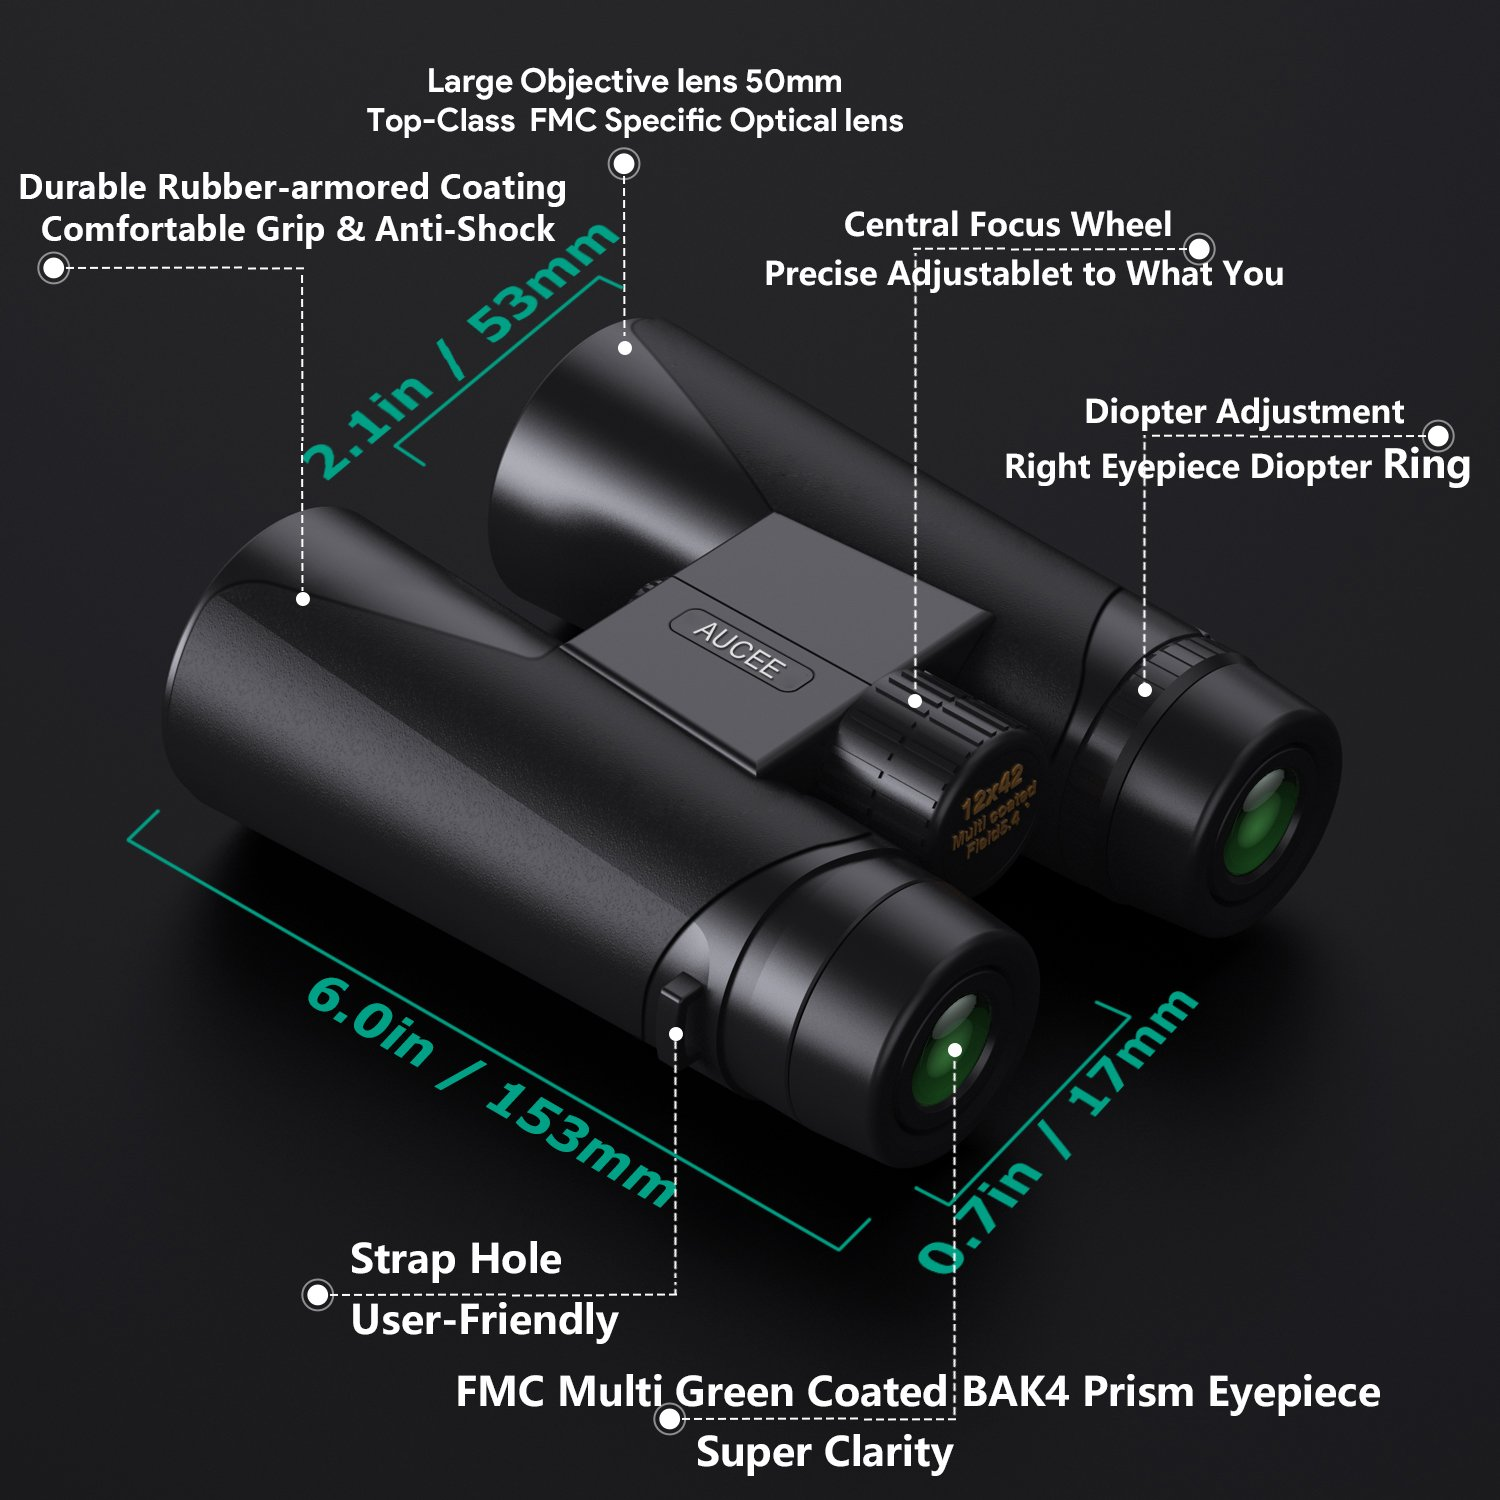 12 x 42 Binoculars for Adults, AUCEE Compact Binoculars for Bird Watching Concerts Football Sports Waterproof Professional HD Binoculars for Travel Hiking-BAK4 Prism FMC Lens with Strap Carry Bag by AUCEE (Image #2)